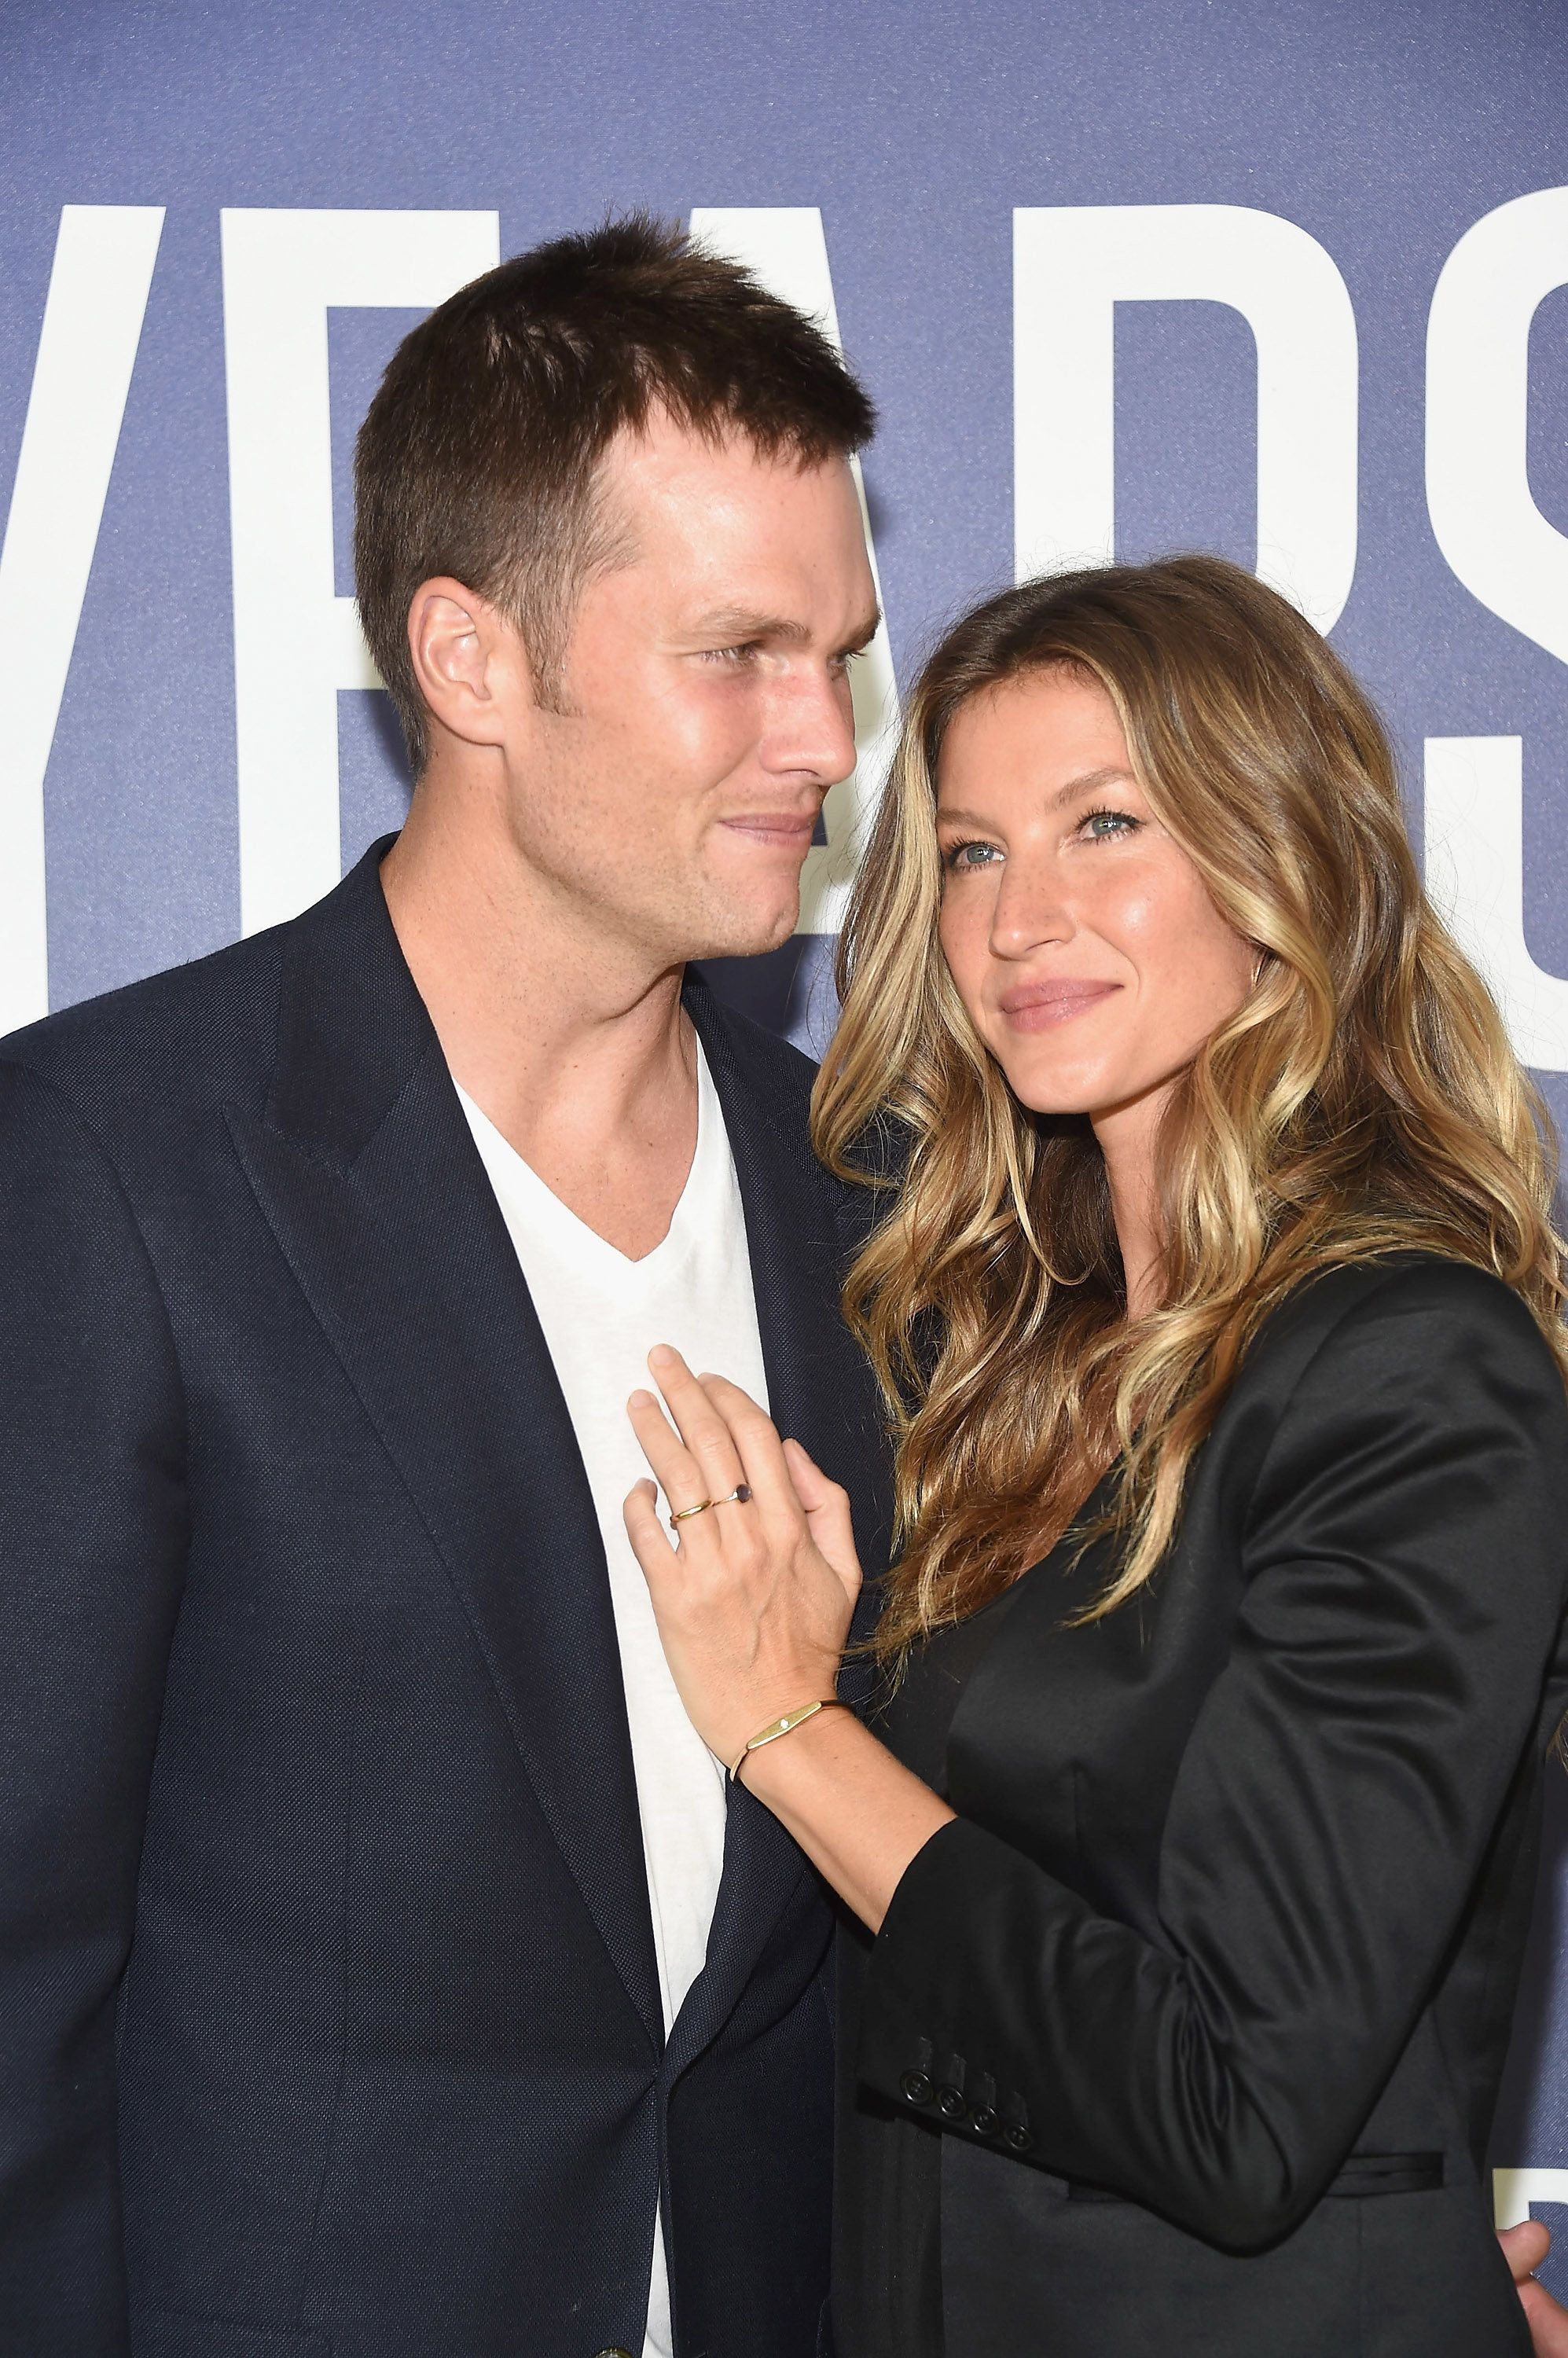 NEW YORK, NY - SEPTEMBER 21:  NFL player Tom Brady and model and YEARS correspondent Gisele Bundchen attend National Geographic's 'Years Of Living Dangerously' Season 2 World Premiere  at American Museum of Natural History on September 21, 2016 in New York City.  (Photo by Gary Gershoff/WireImage)